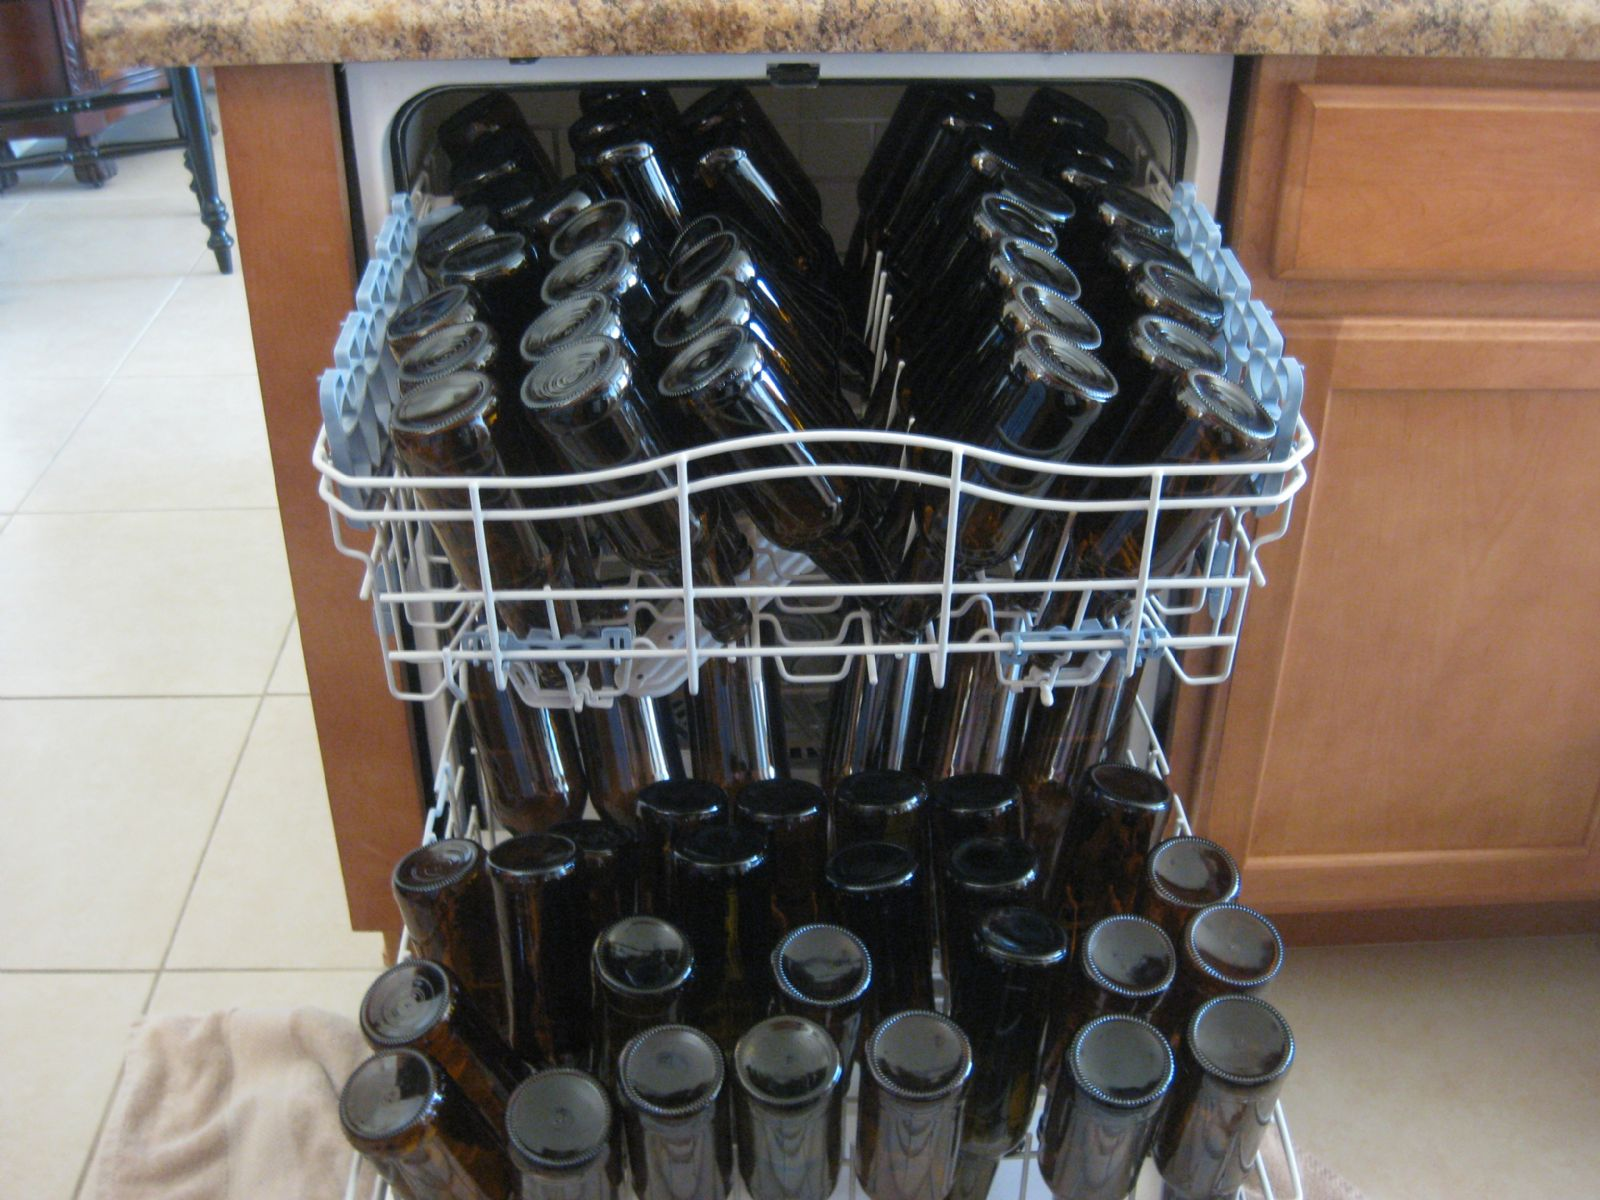 Using a Dish Washer to Clean Beer Bottles